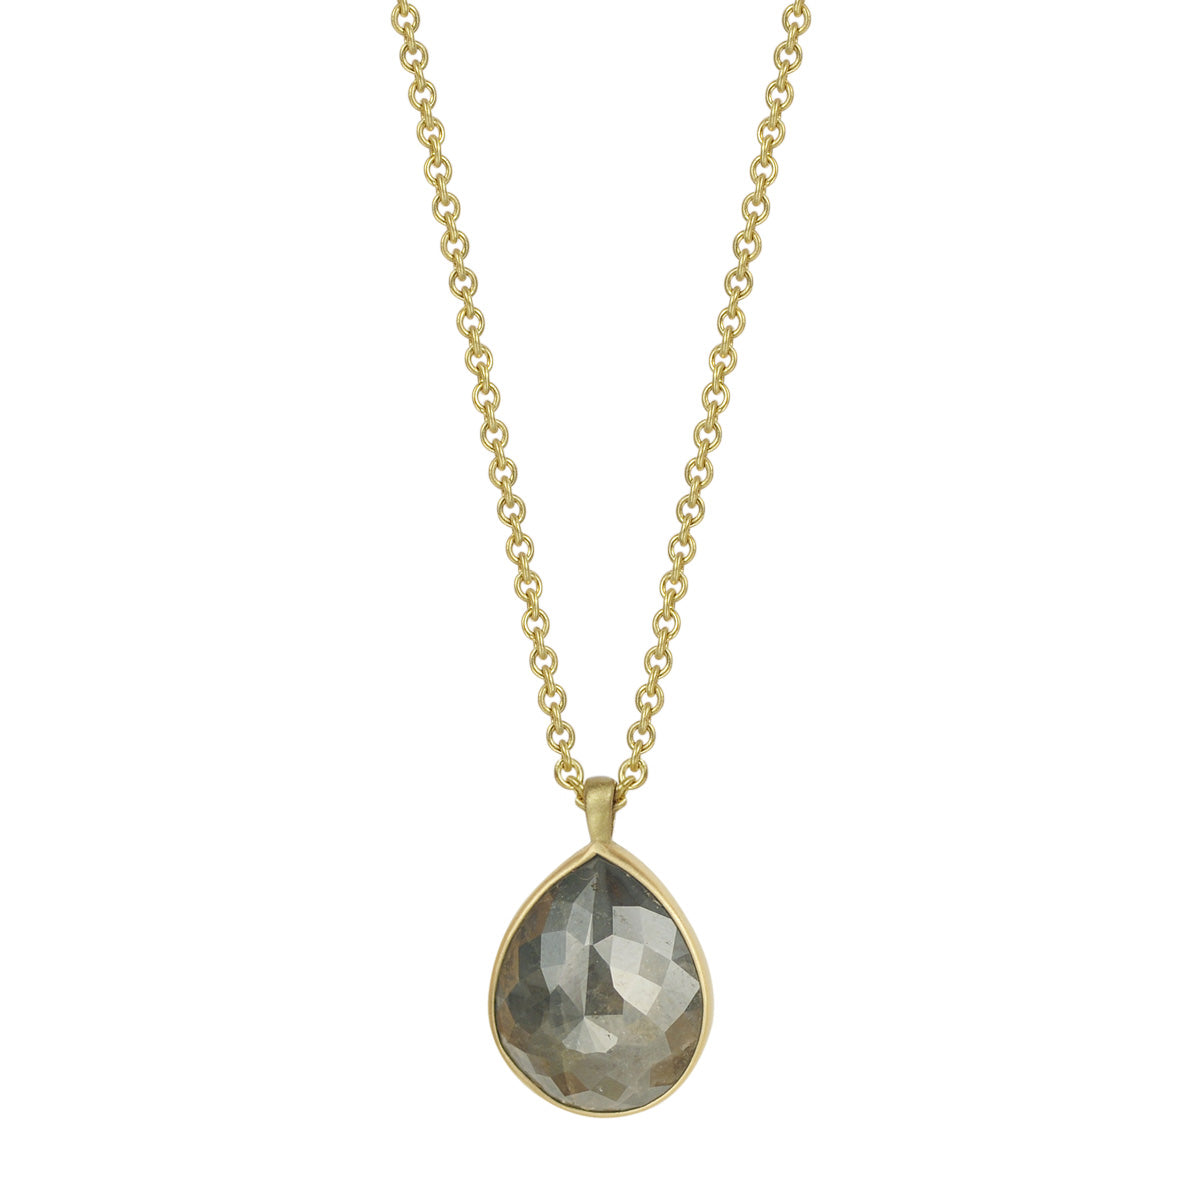 18K Gold Grey Opaque Diamond Teardrop Pendant